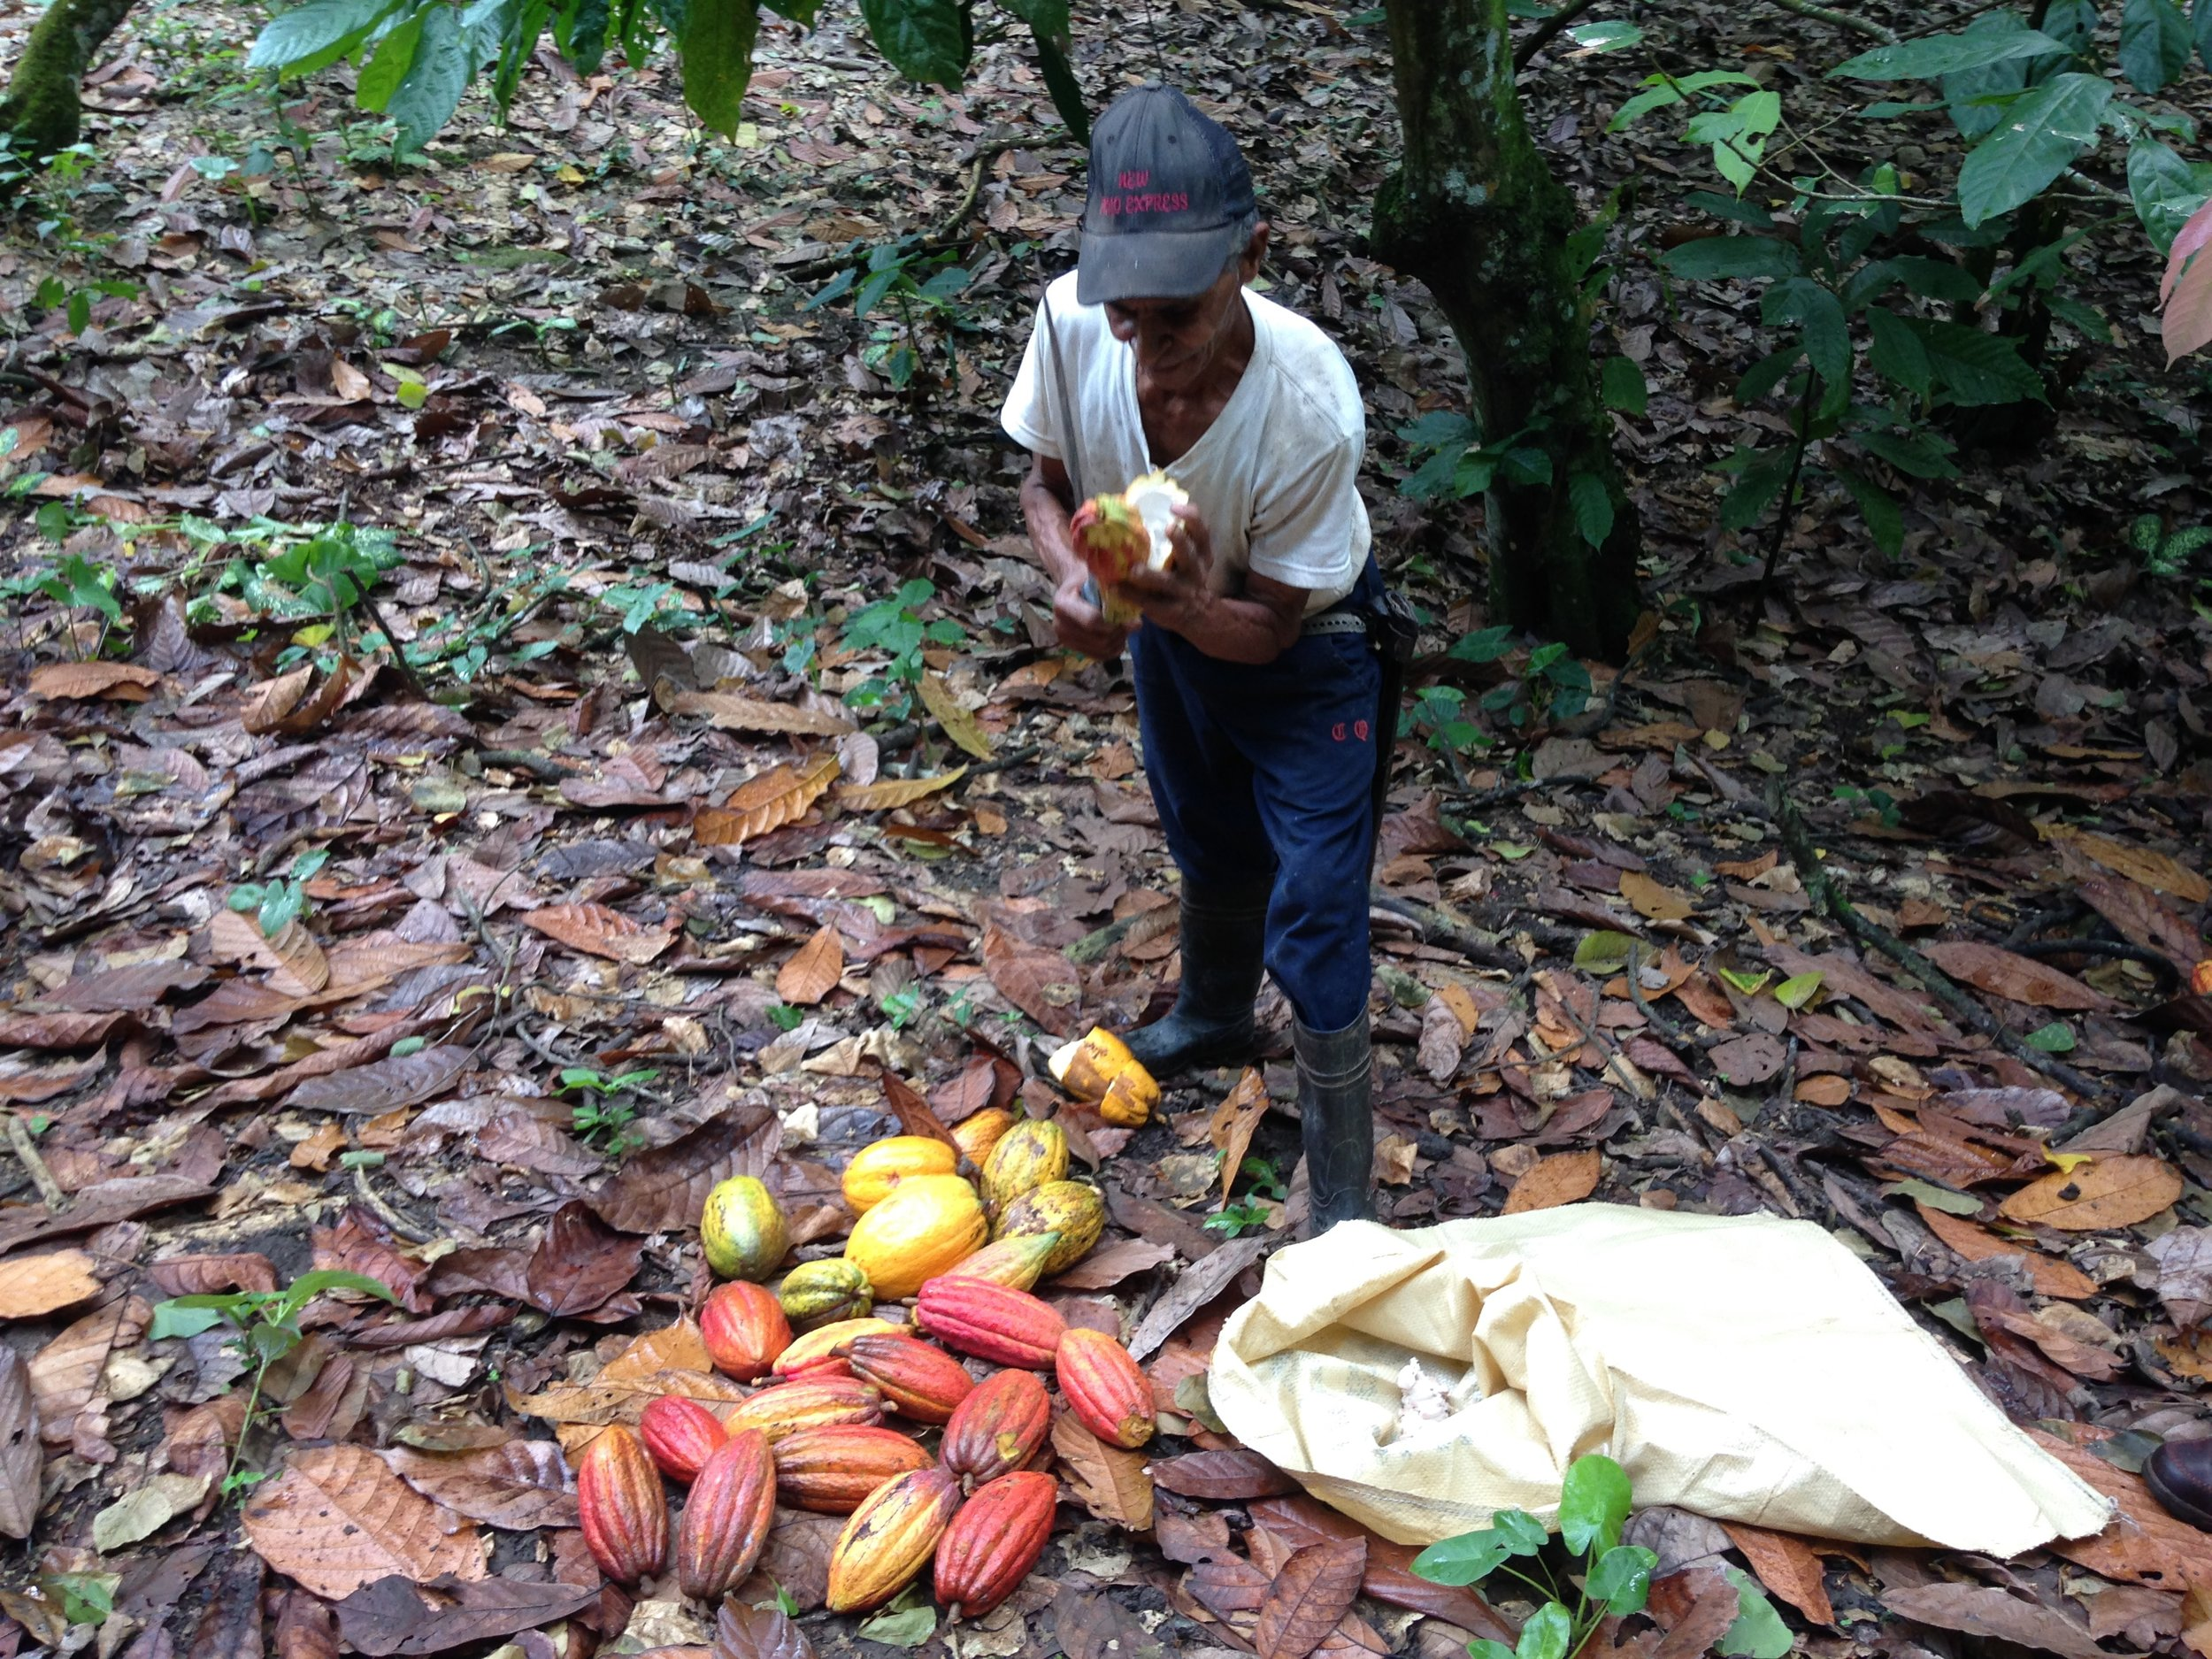 Collecting the wet cacao seeds